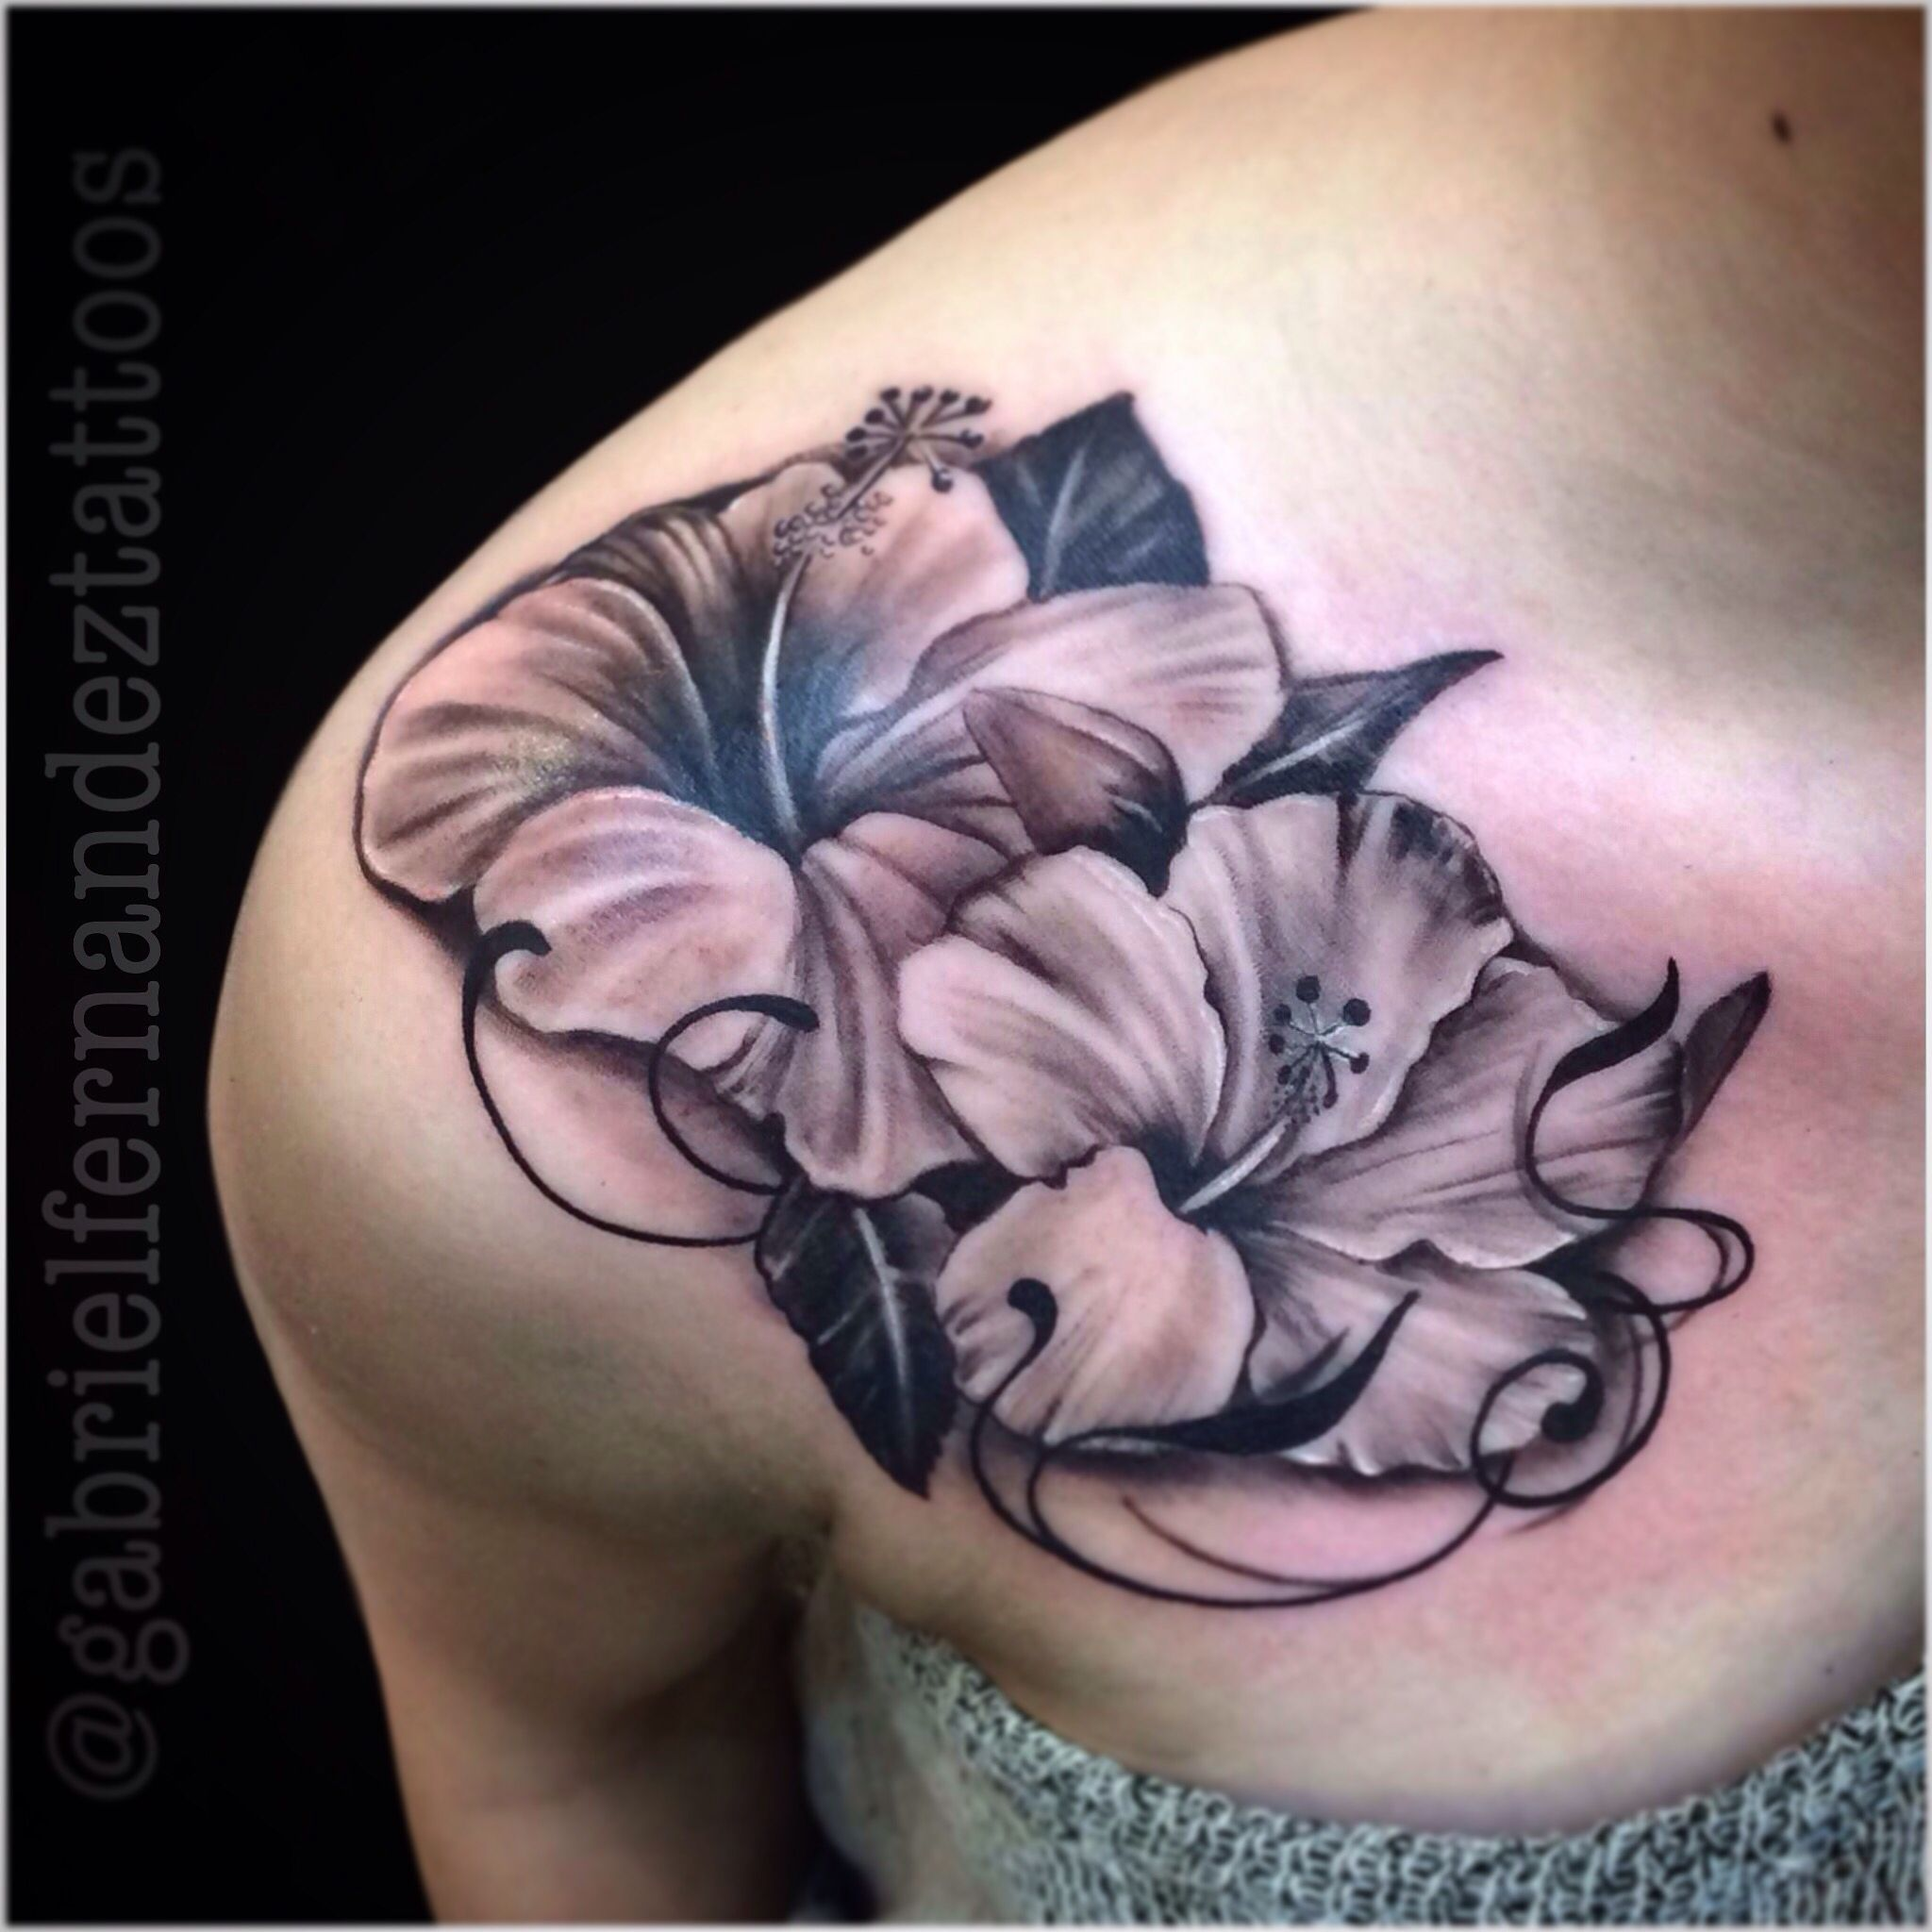 24 Hibiscus Flower Tattoos Designs Trends Ideas: First Hibiscus Flowers I Did. They Need It To Be Semi